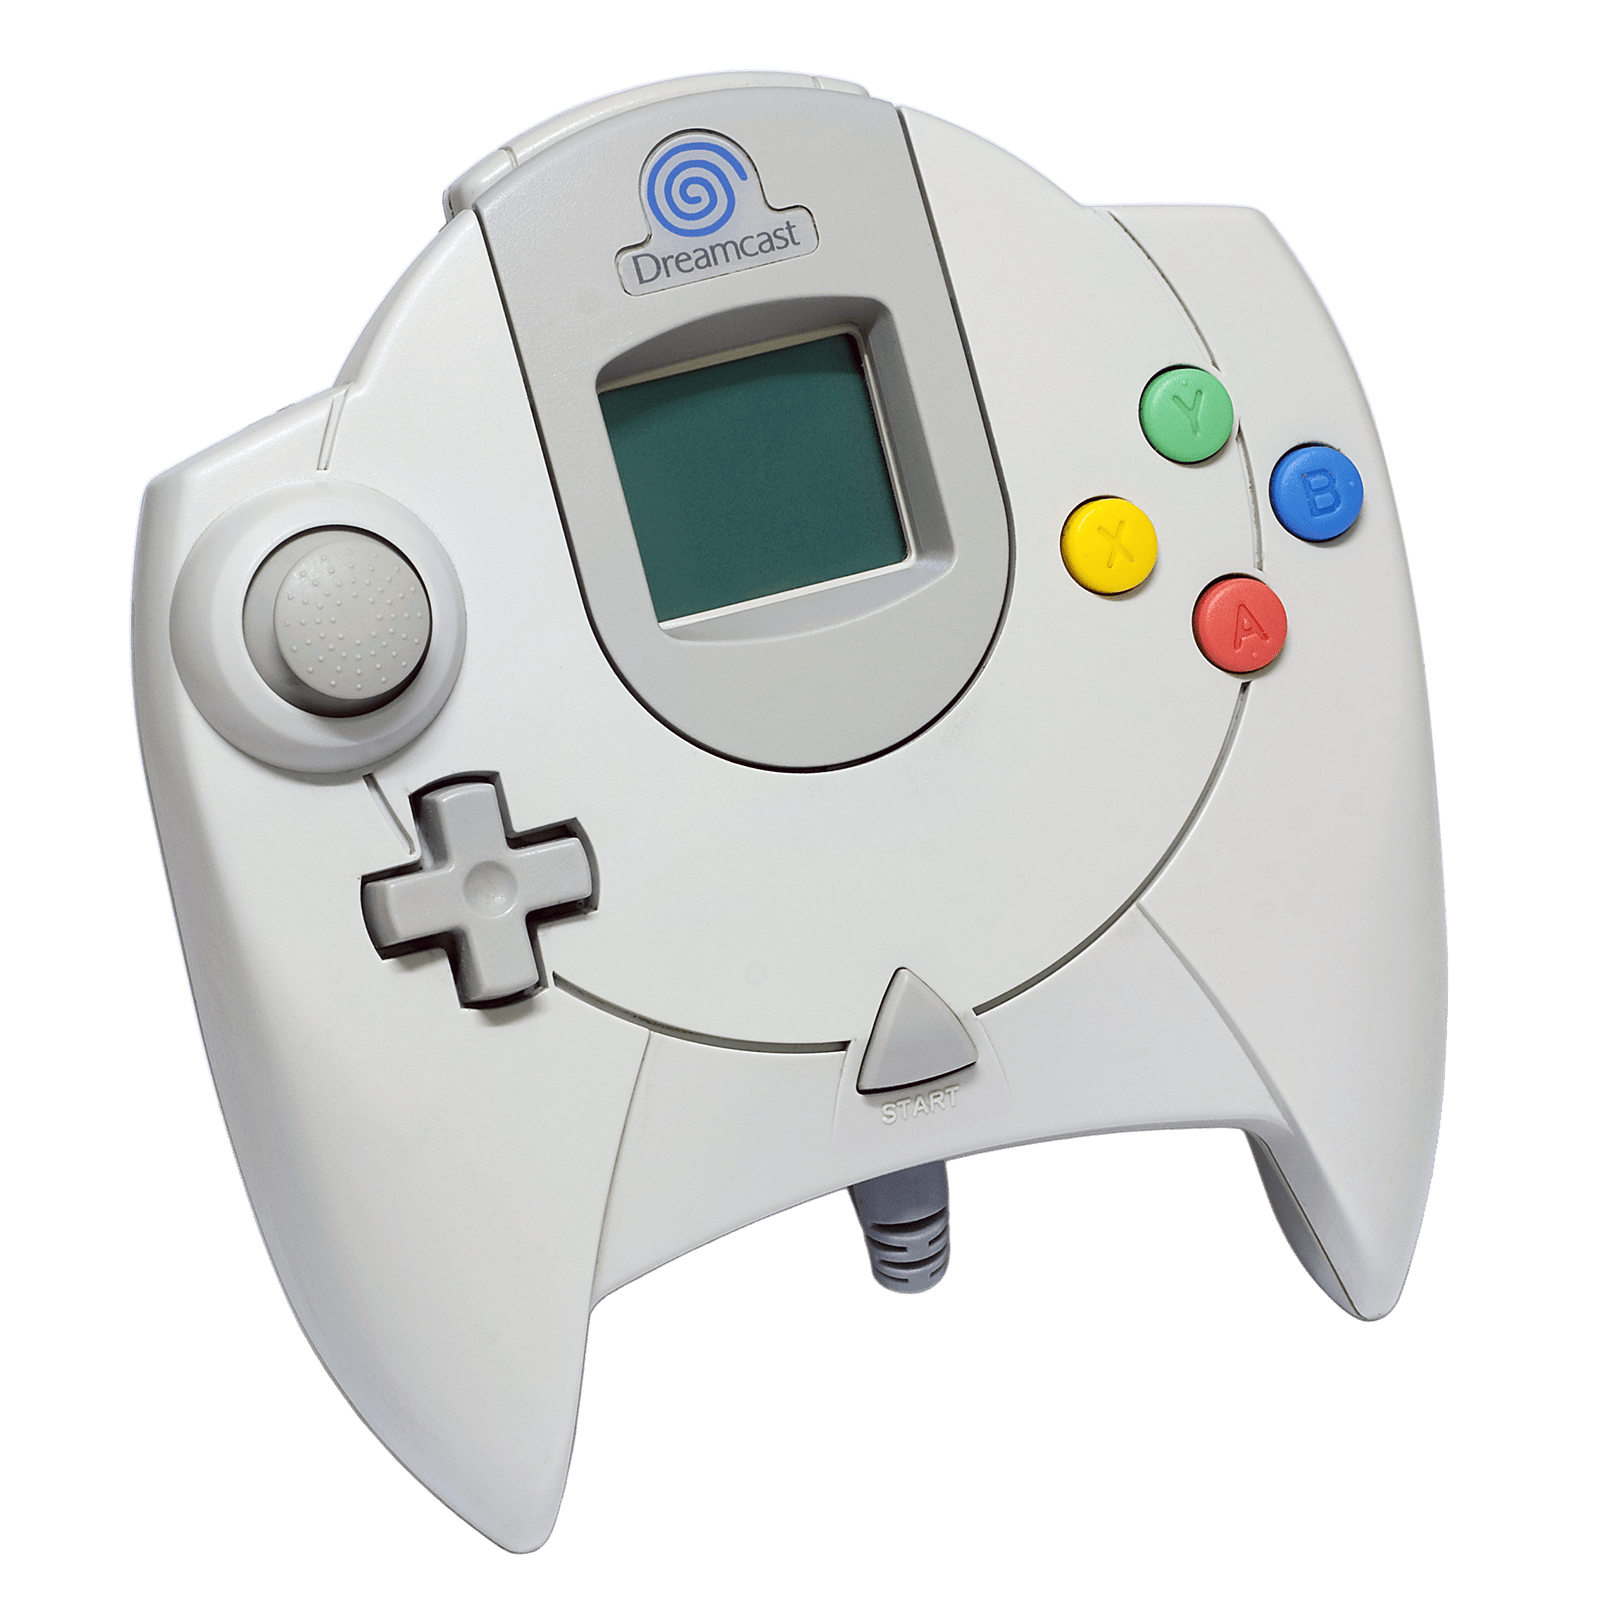 Image result for dreamcast controller